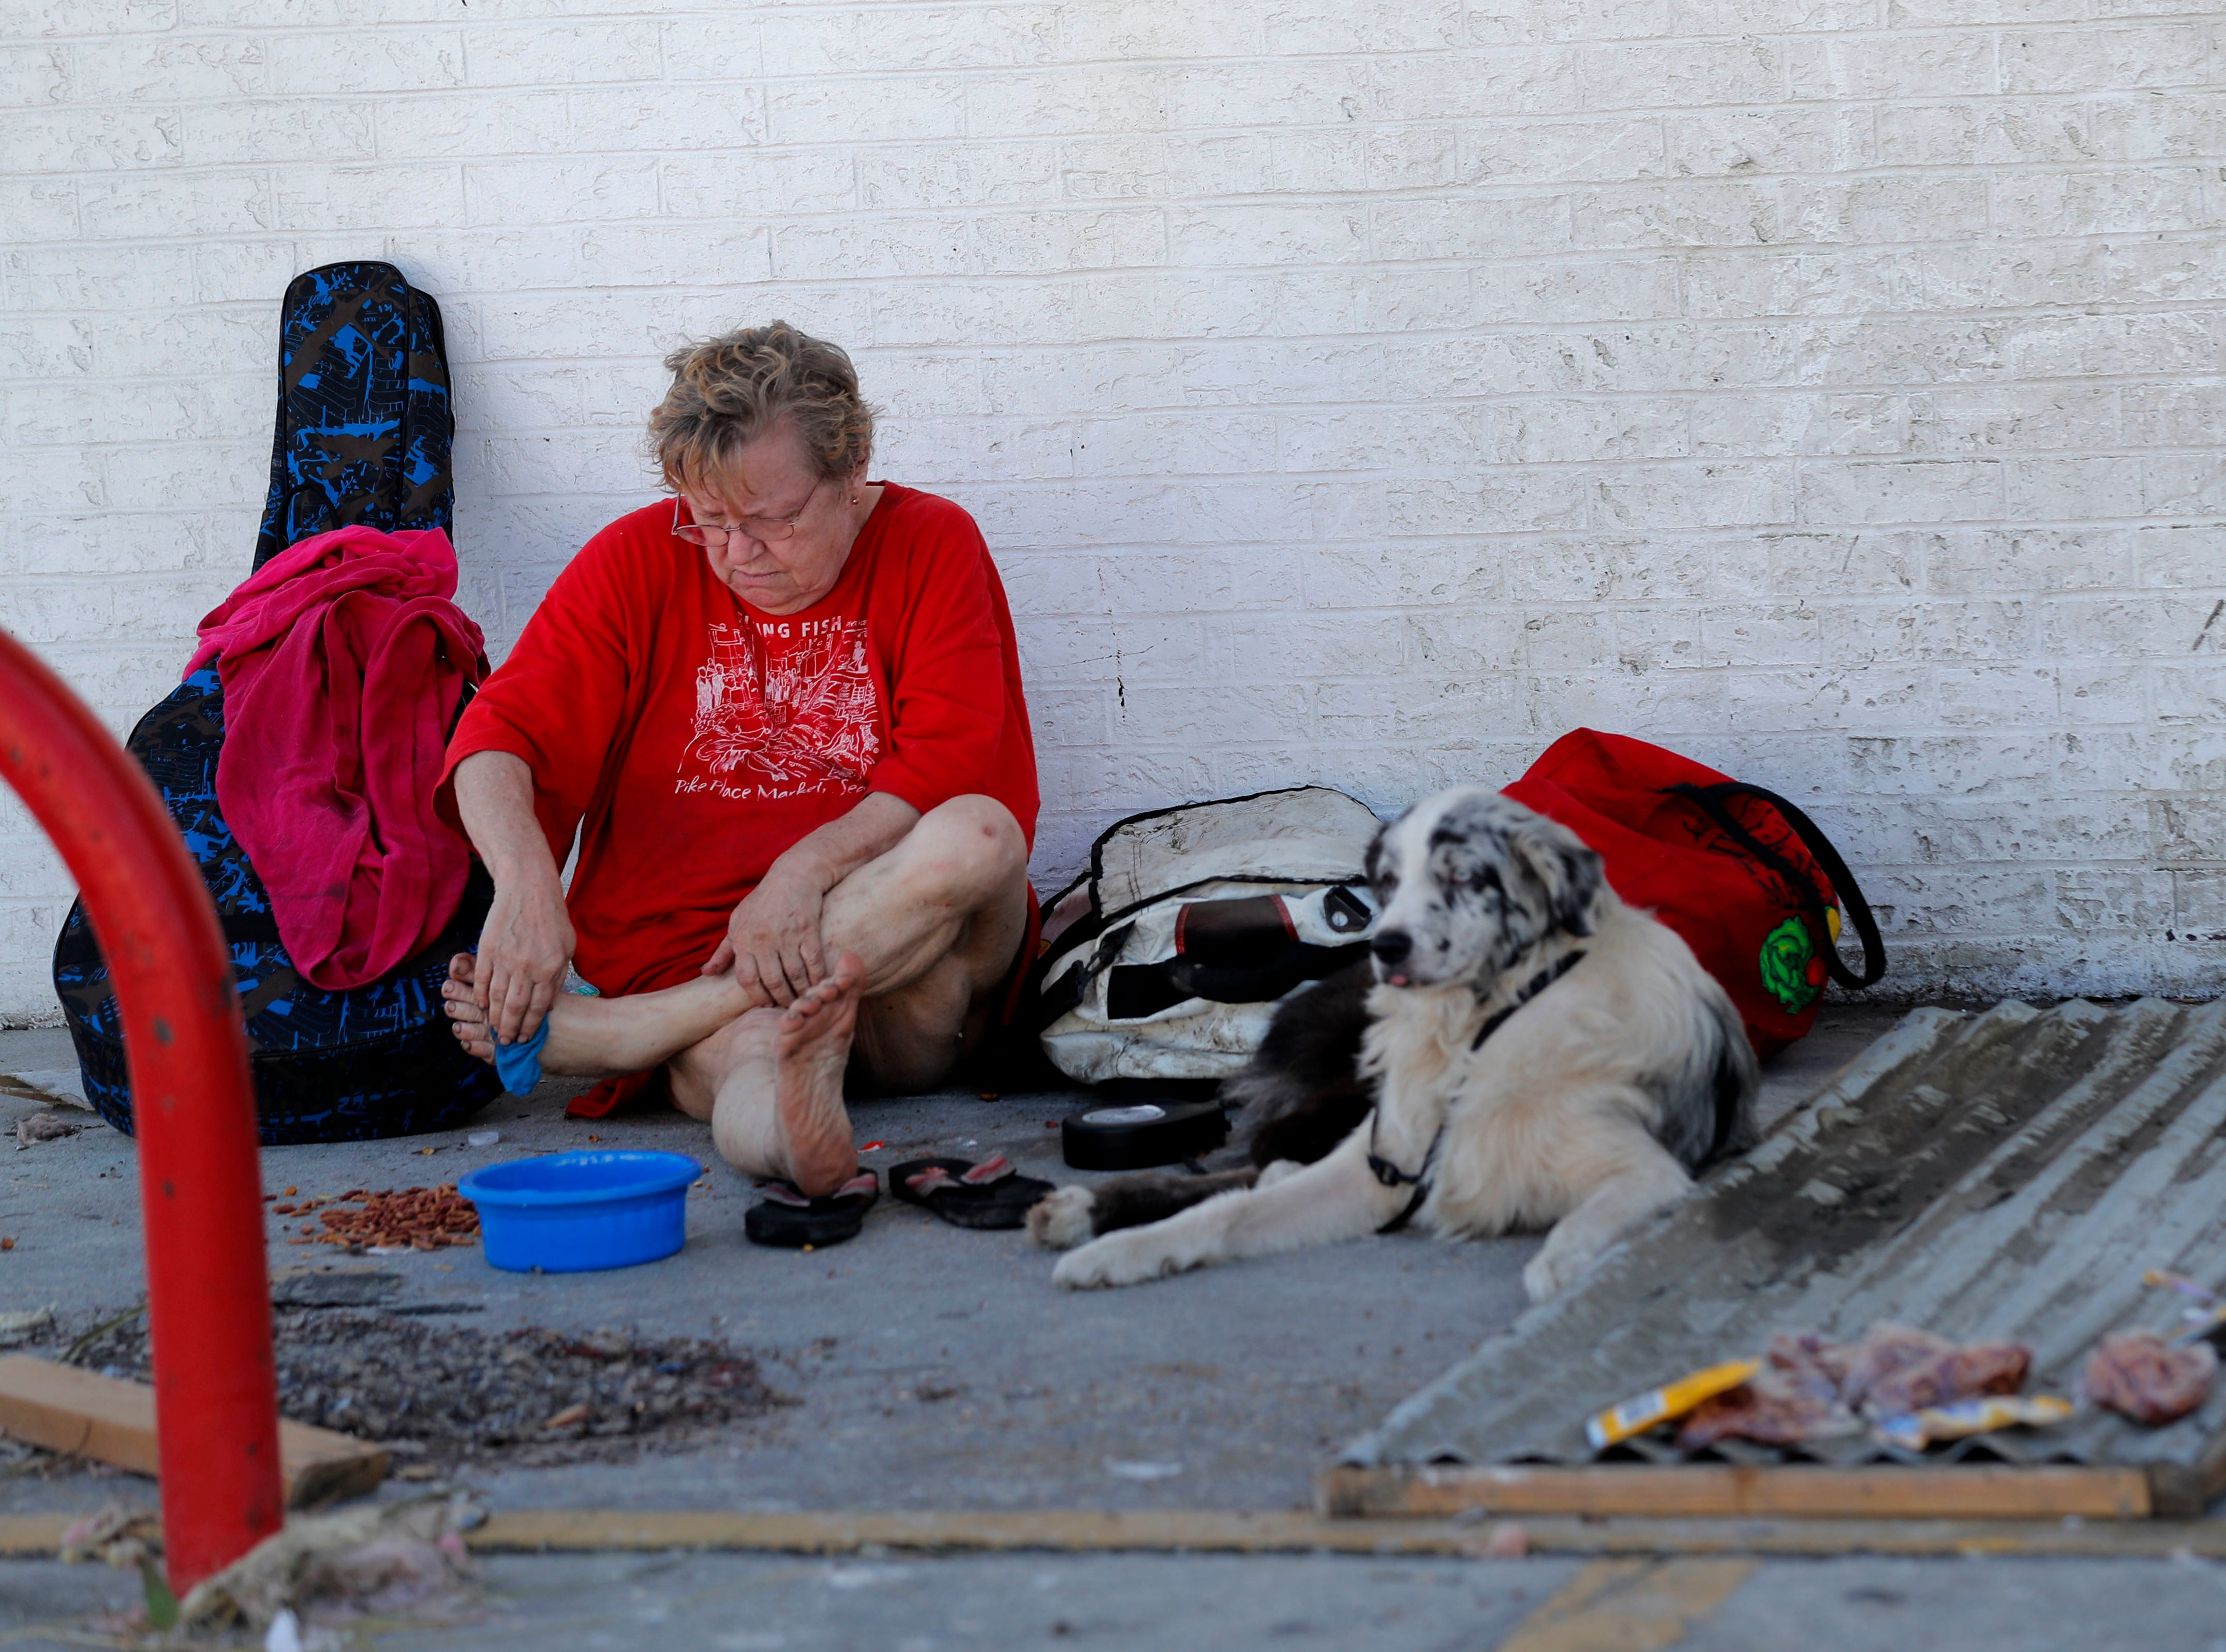 Robin Retzloff who rode out Hurricane Michael in her now destroyed home, sits in front of a heavily damaged convenience store with her dog Markie, the aftermath of Hurricane Michael in Mexico Beach, Fla., Thursday, Oct. 11, 2018. Her husband is in a hospital and she has not been able to reach him, so she has nowhere to go. (AP Photo/Gerald Herbert)